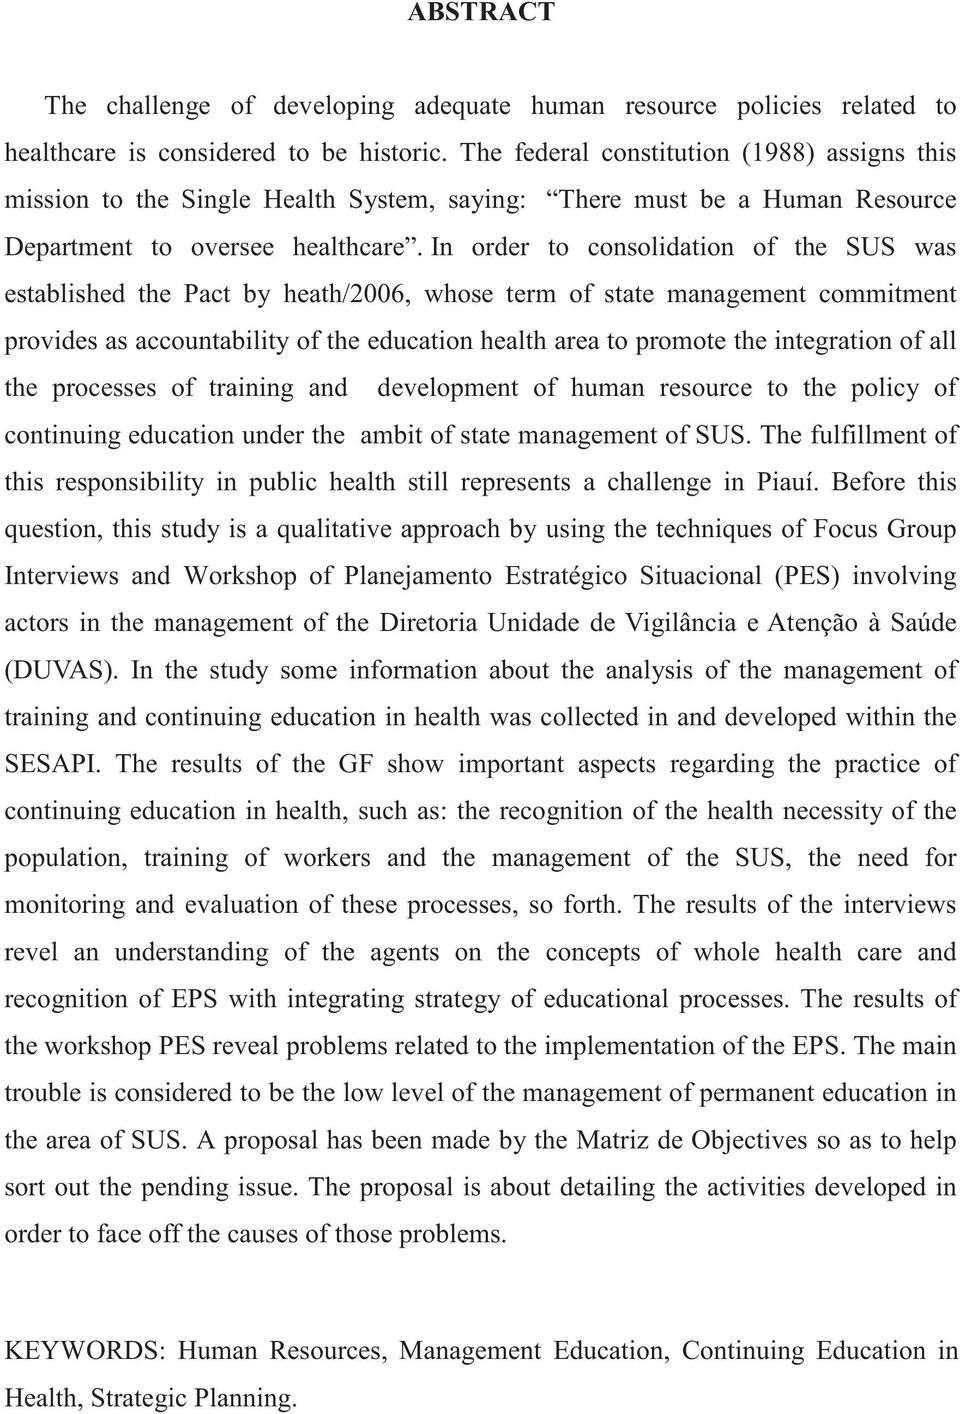 In order to consolidation of the SUS was established the Pact by heath/2006, whose term of state management commitment provides as accountability of the education health area to promote the